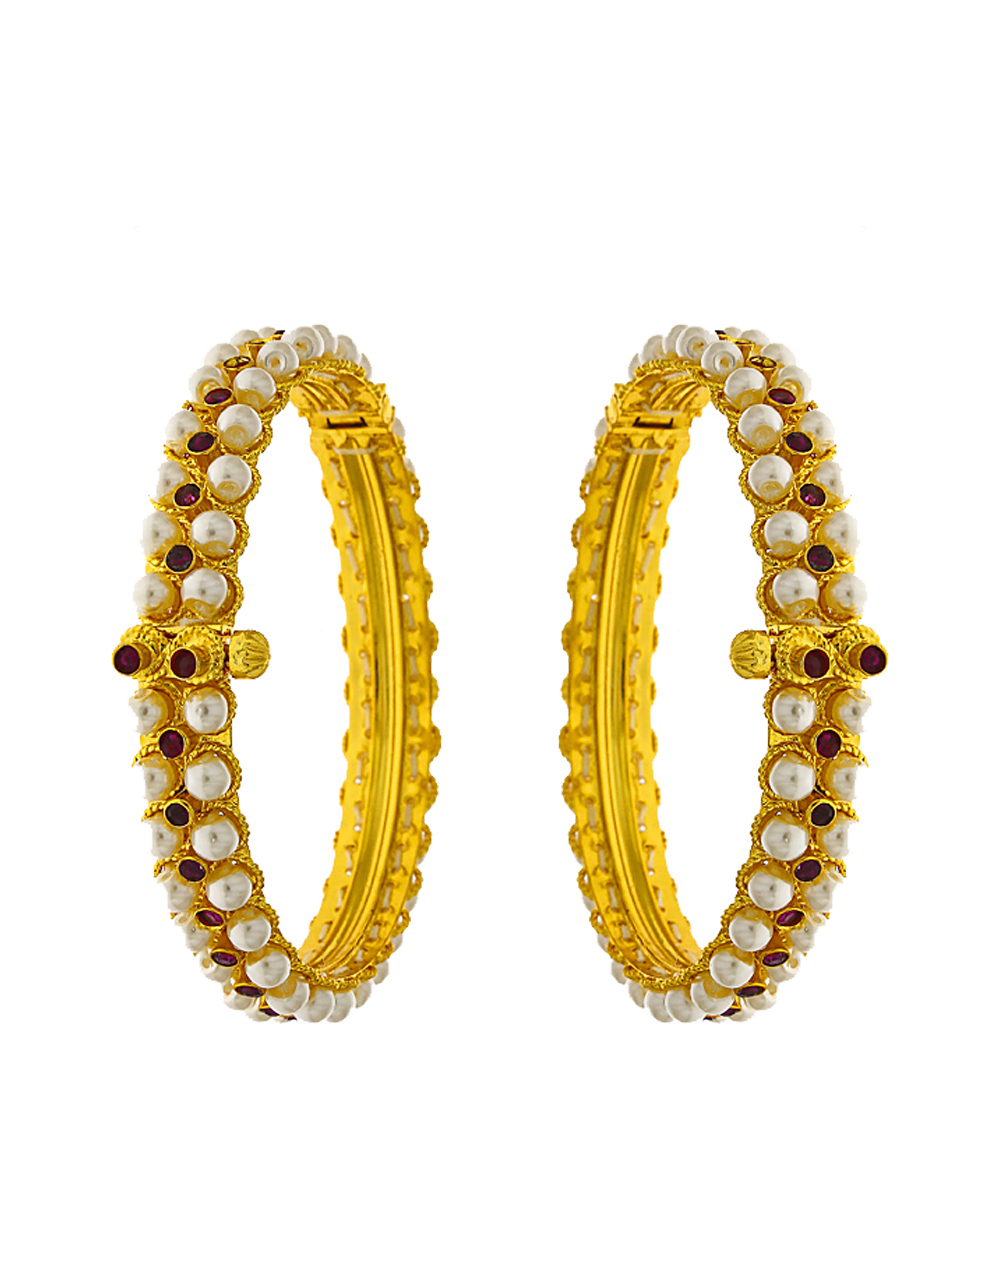 Adorable Golden Finish Pearl and Stone Studded Traditional Bangles.